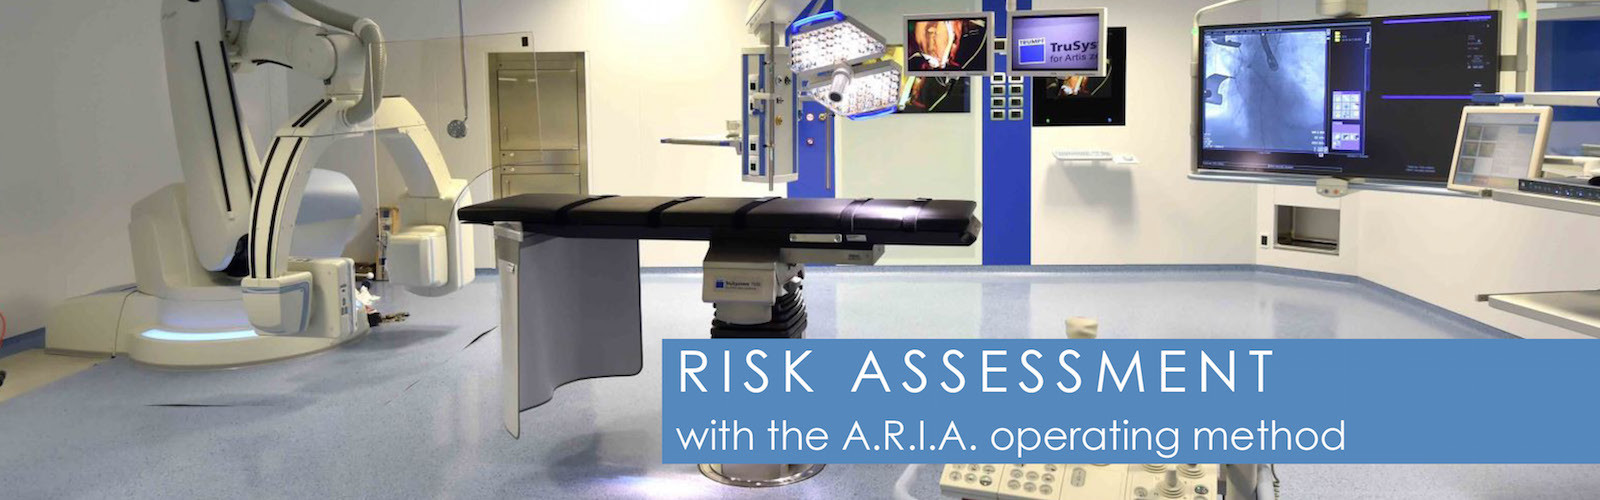 risk assessment with A.R.I.A. operating method